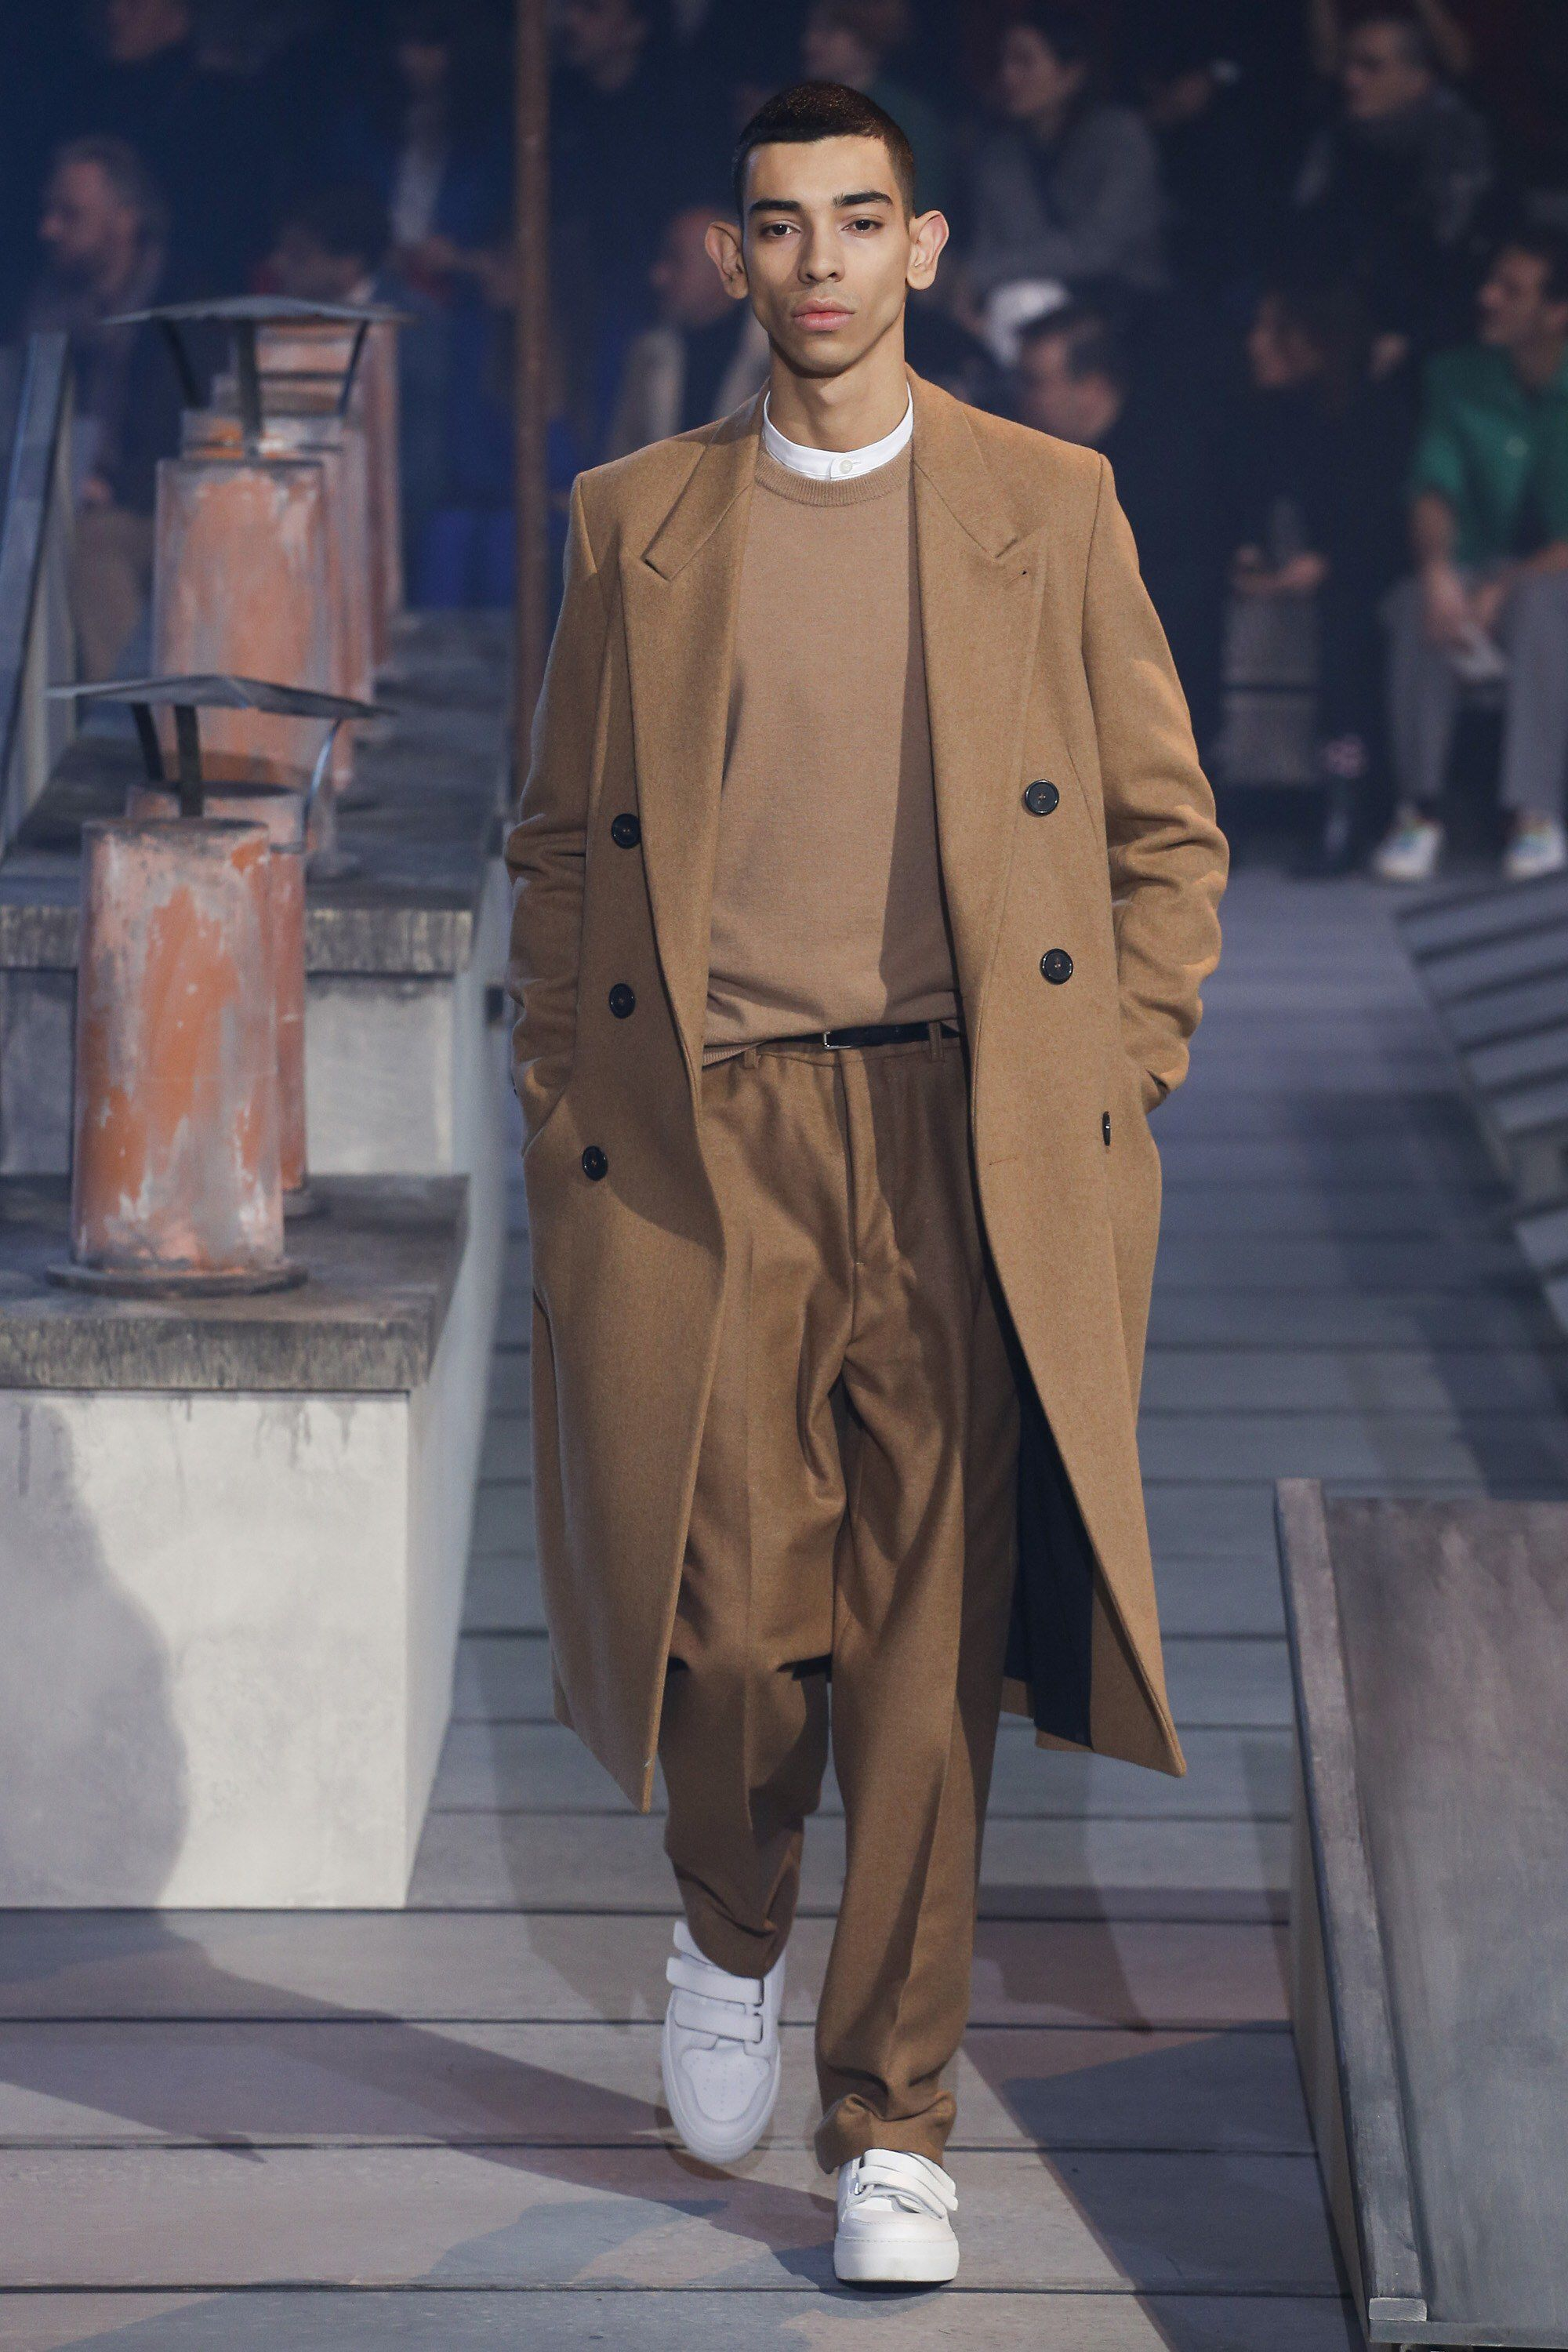 Ami fall menswear fashion show collection fallwinter